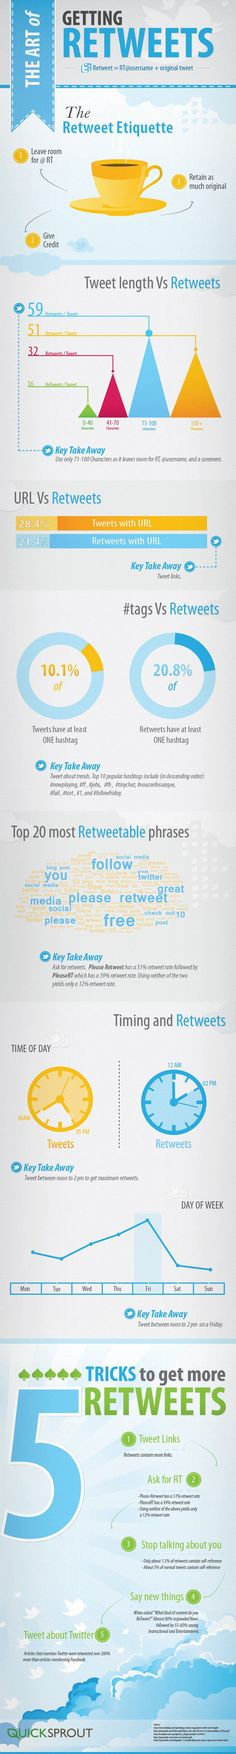 Get More Retweets on Twitter [Infographic]